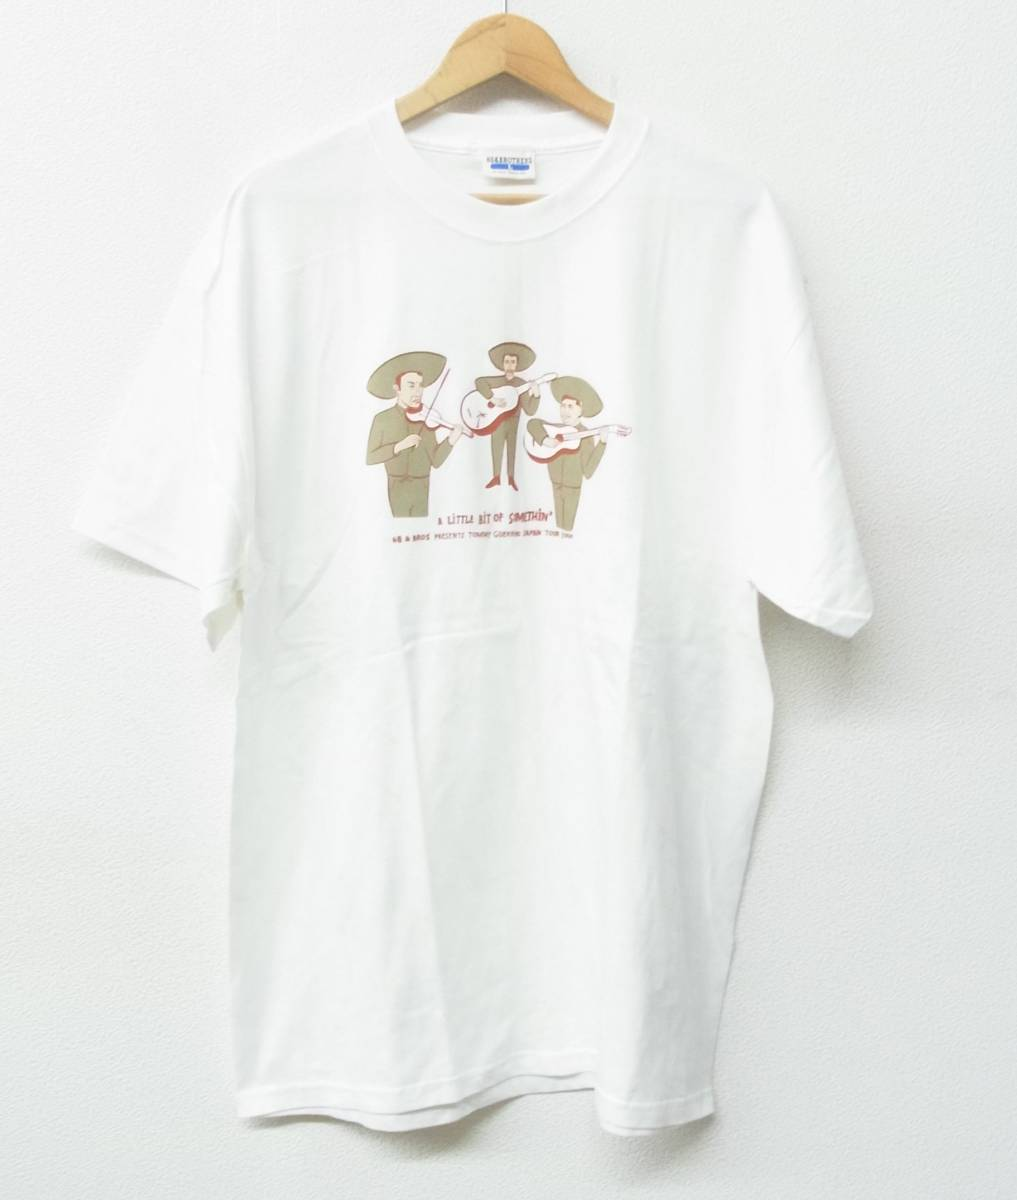 68&BROTHERS PRESENTS Tommy Guerreroトミーゲレロ 2000 JAPAN TOUR Tシャツ *COLOR WHITE マリアッチ*MADE IN USA*MEDIUM ②